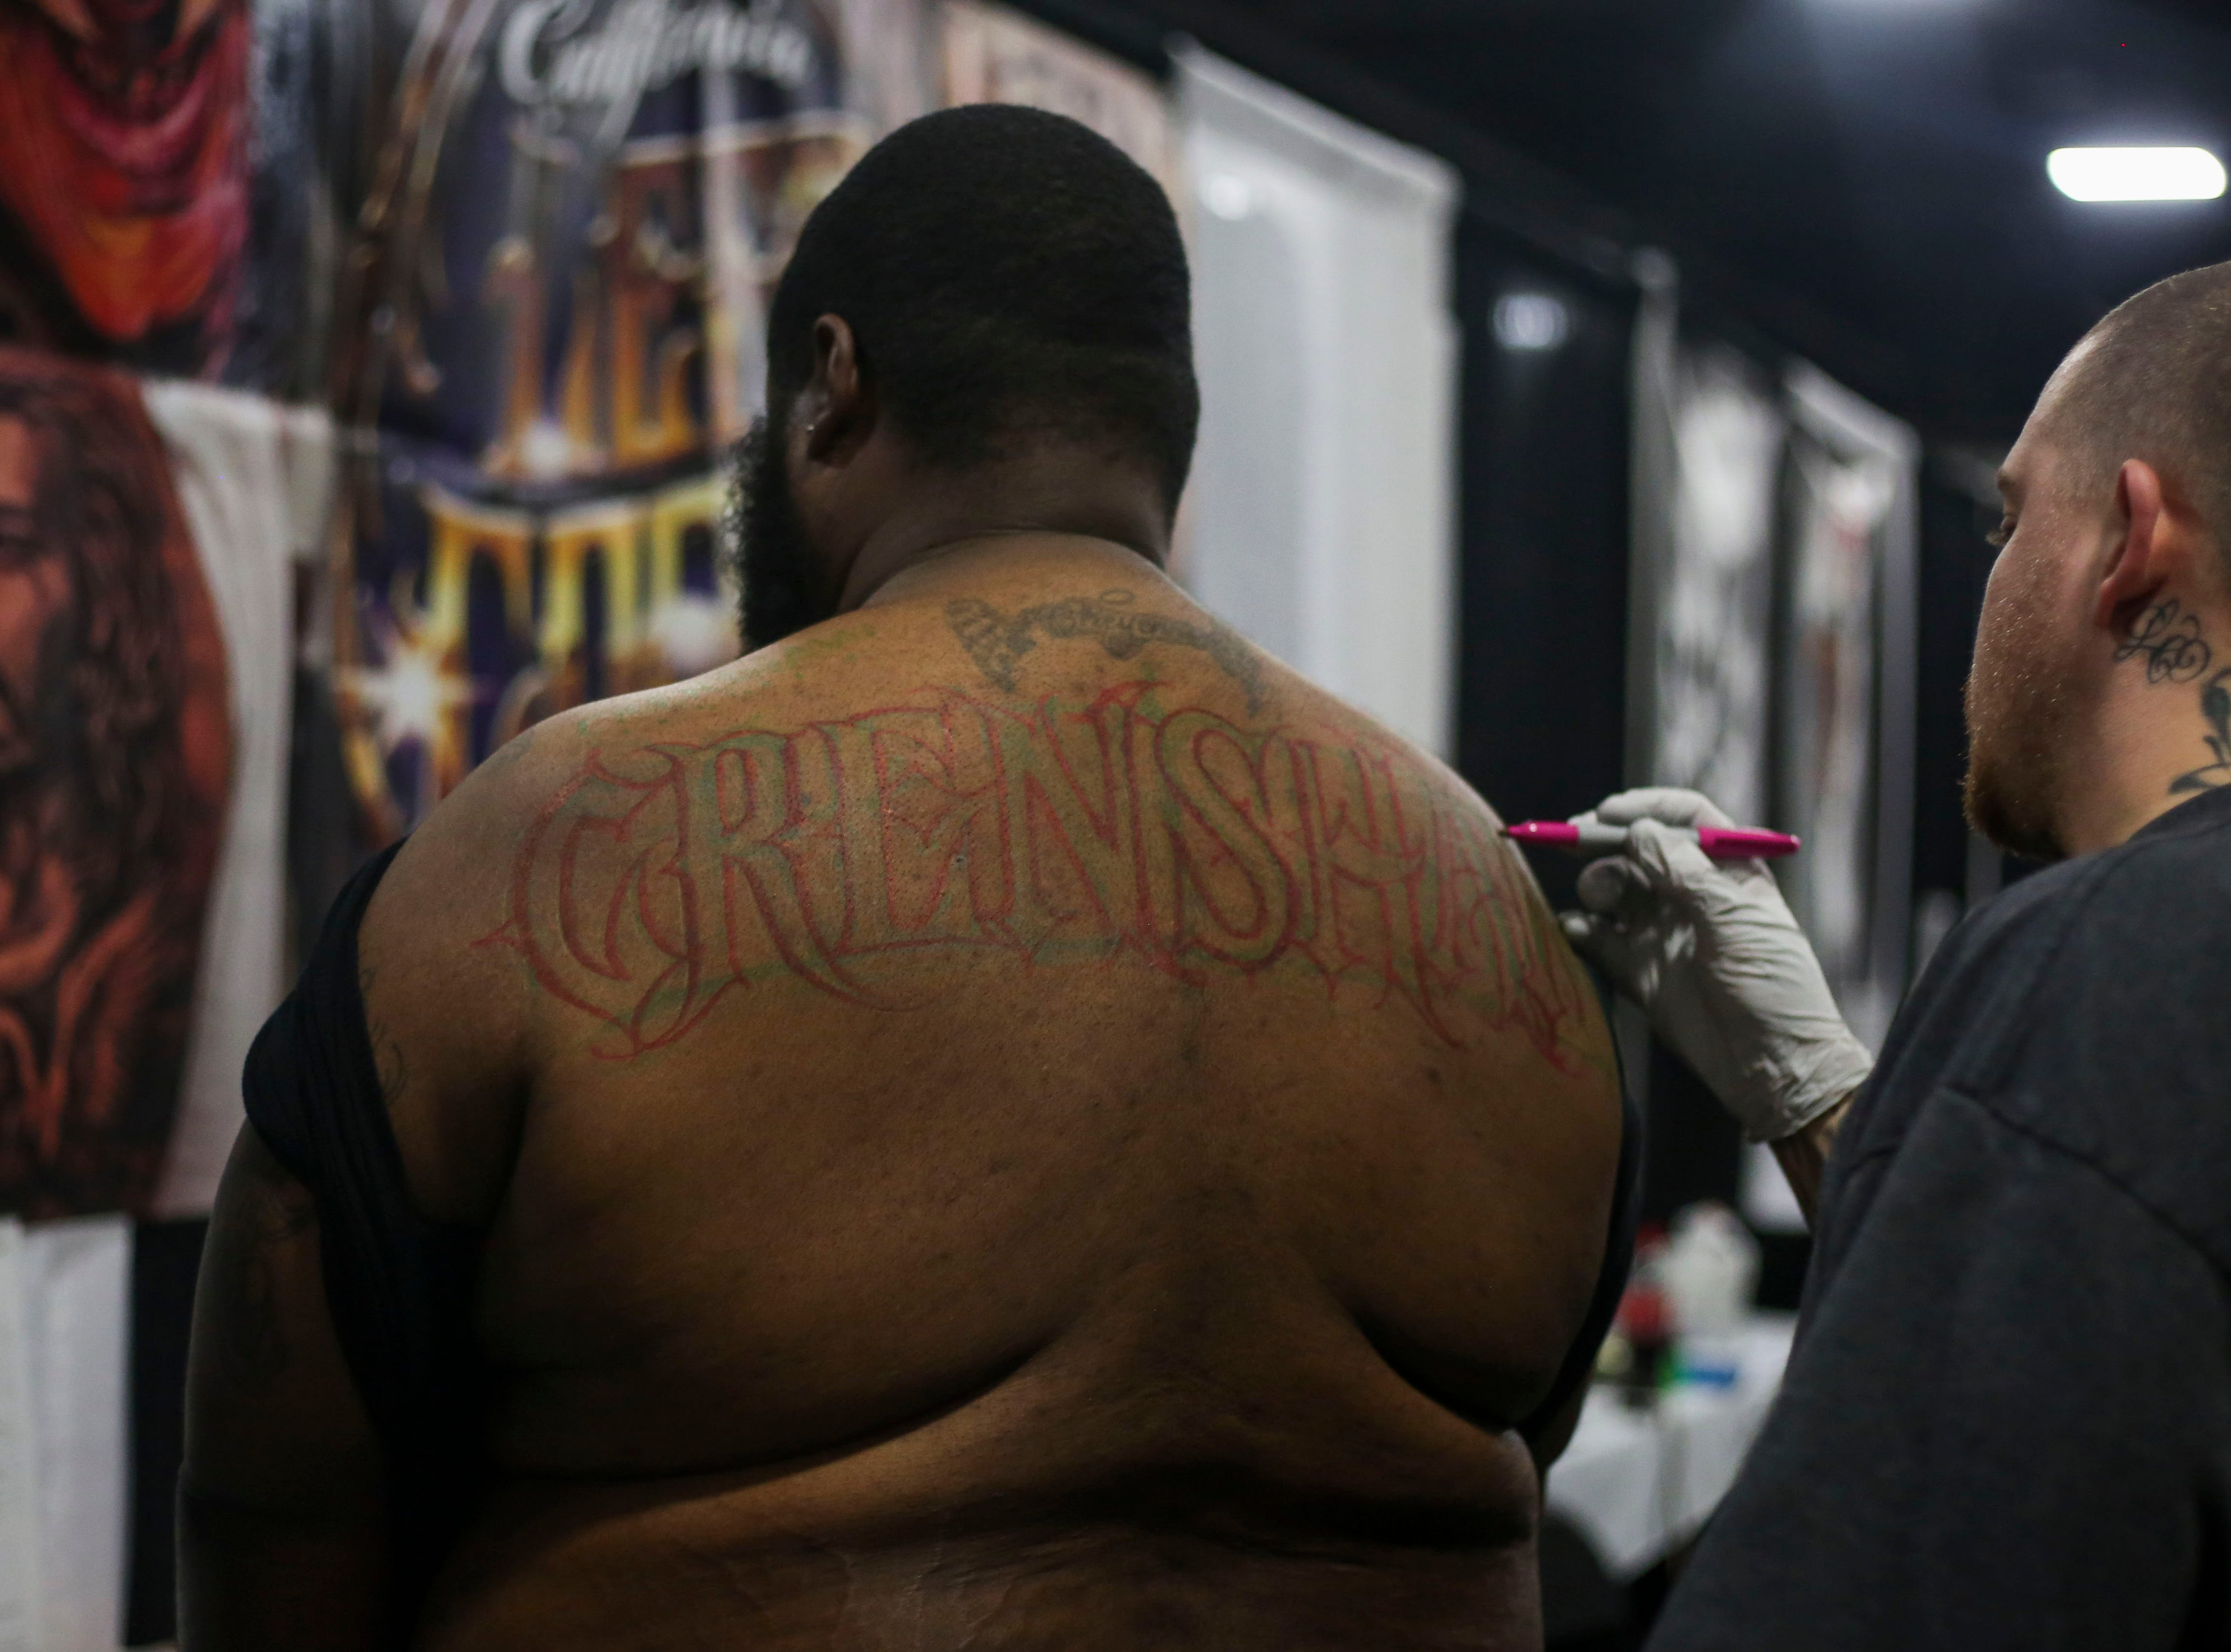 Case One sketches a tattoo on Moss during the 8th Annual Louisville Tattoo Arts Convention put on by Villain Arts at the Kentucky Expo Center in Louisville, Ky. on Saturday, April 13, 2019.